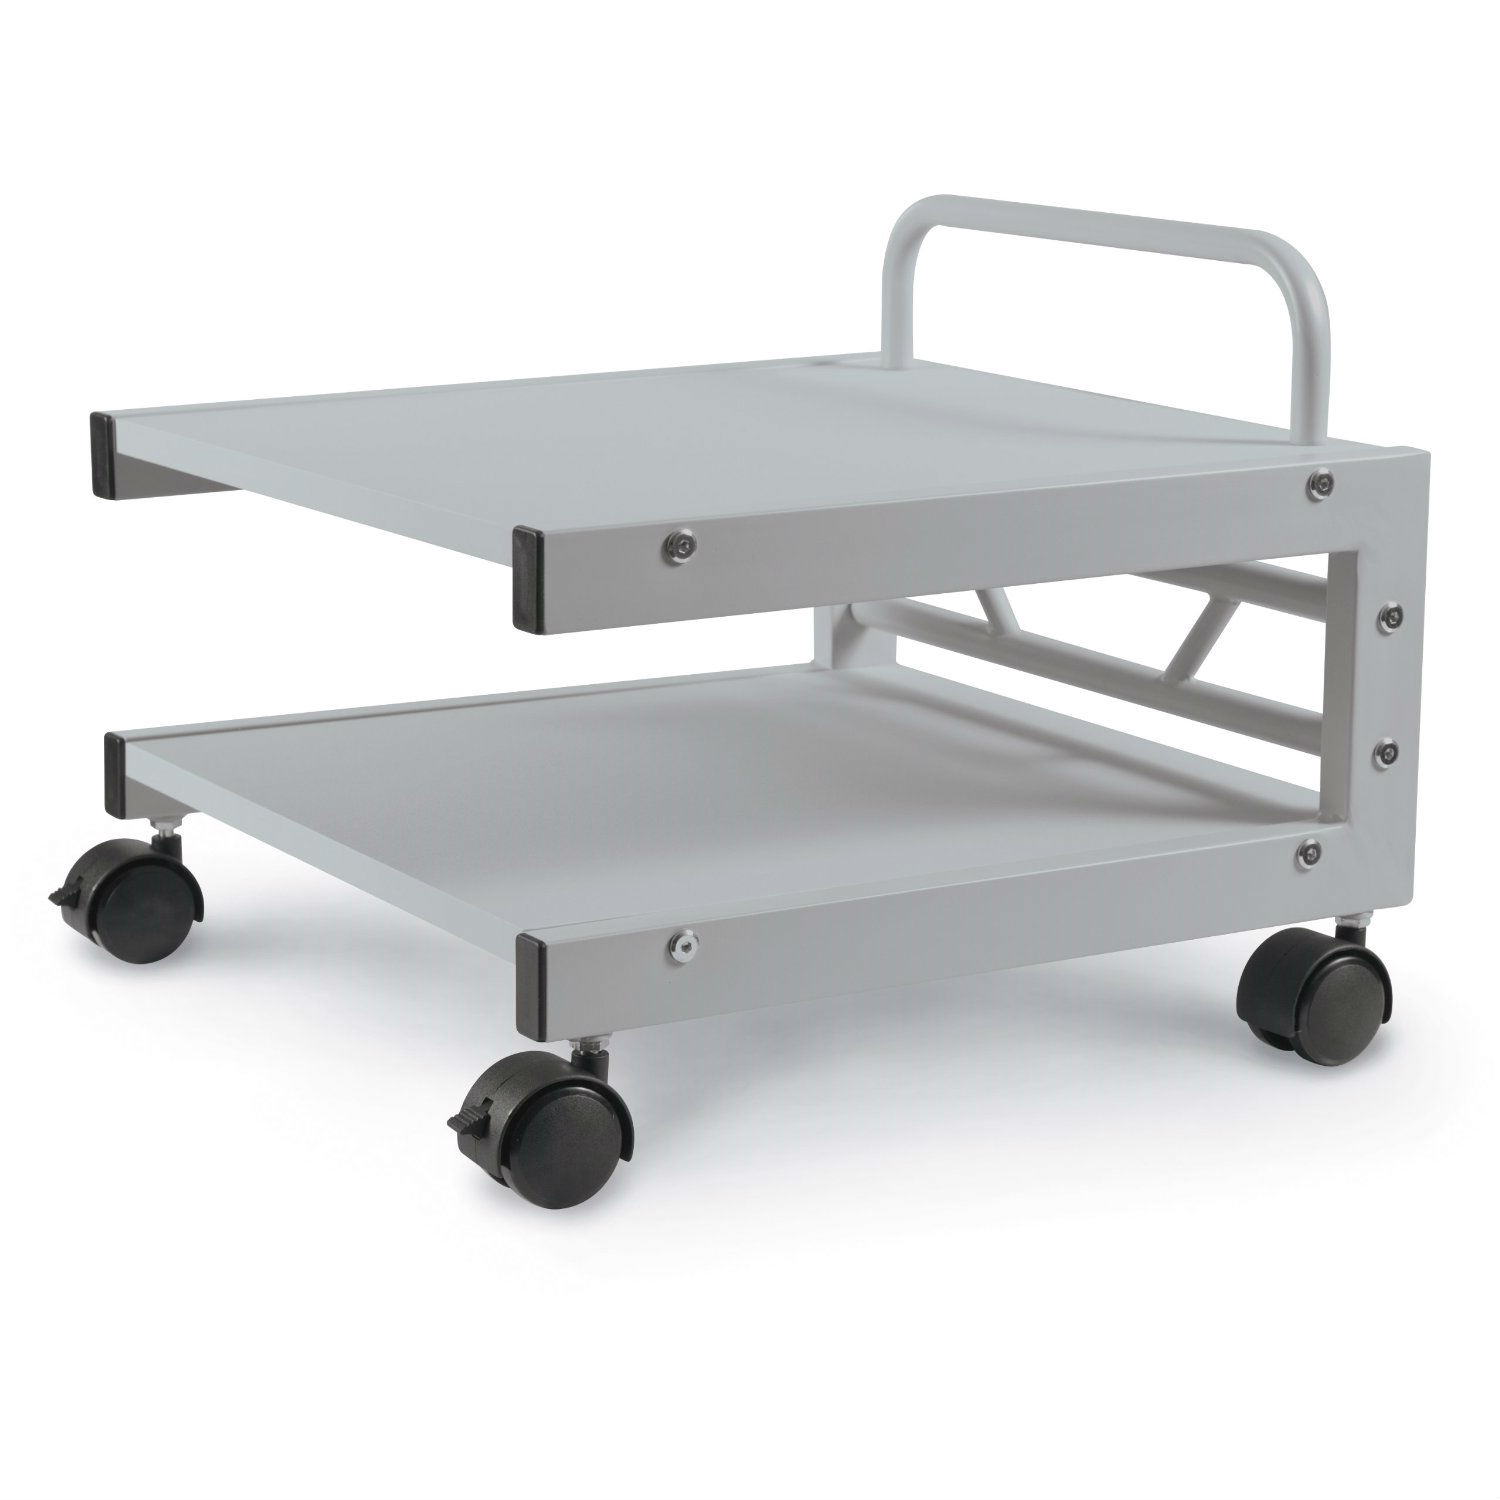 Low Profile Printer Stand With Bottom Paper Shelf And